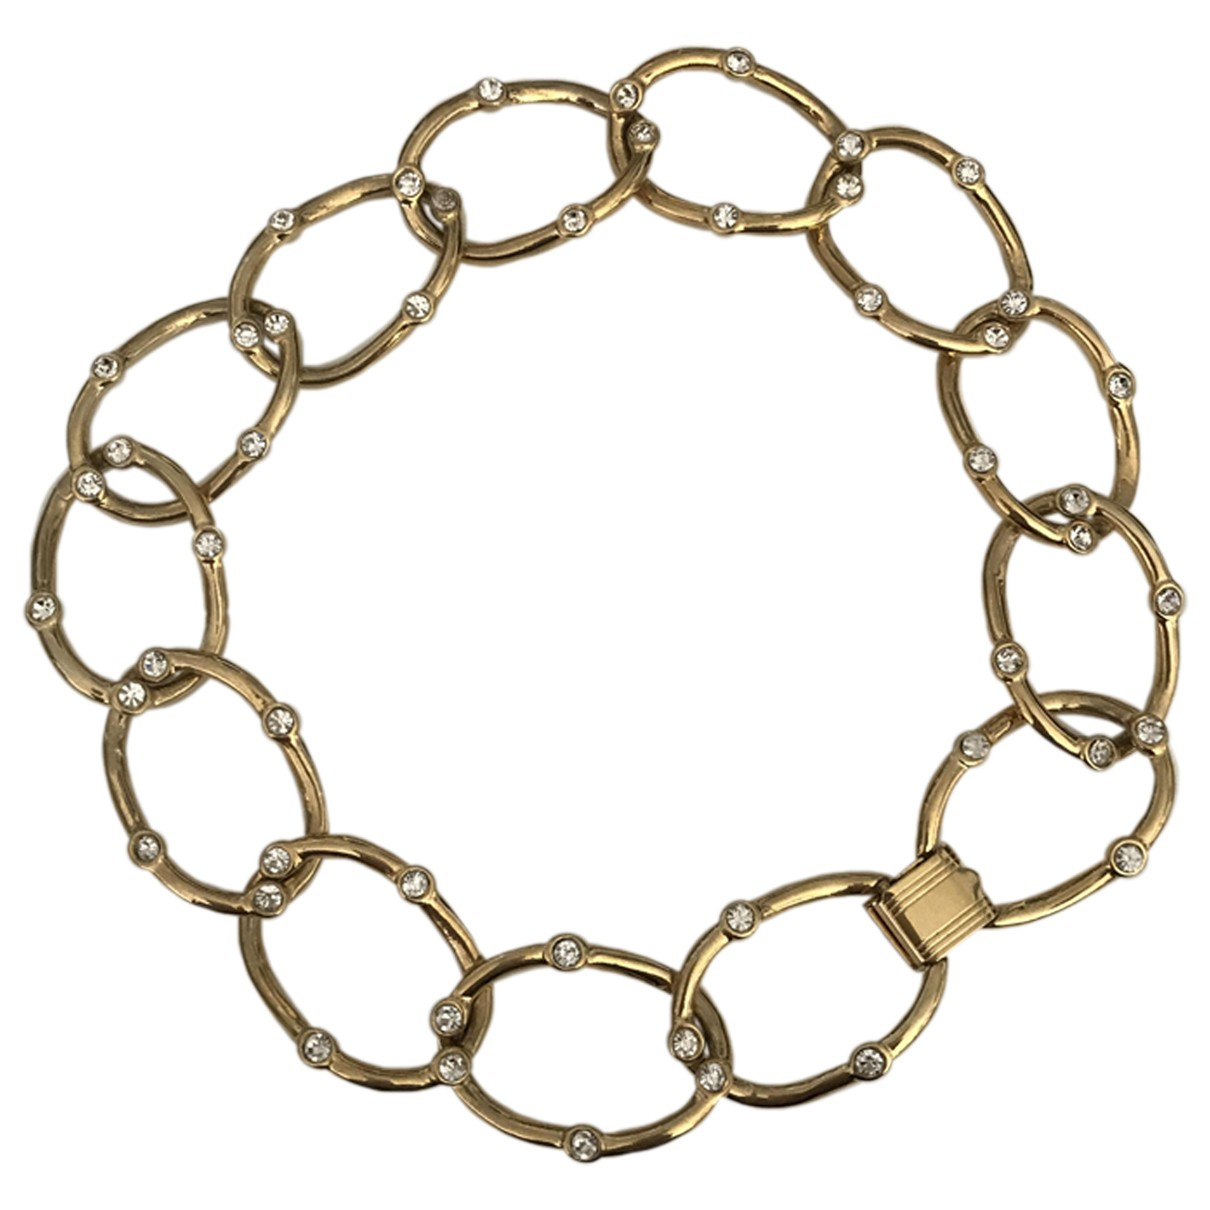 Kenneth Jay Lane \N Kette in  Gold Metall